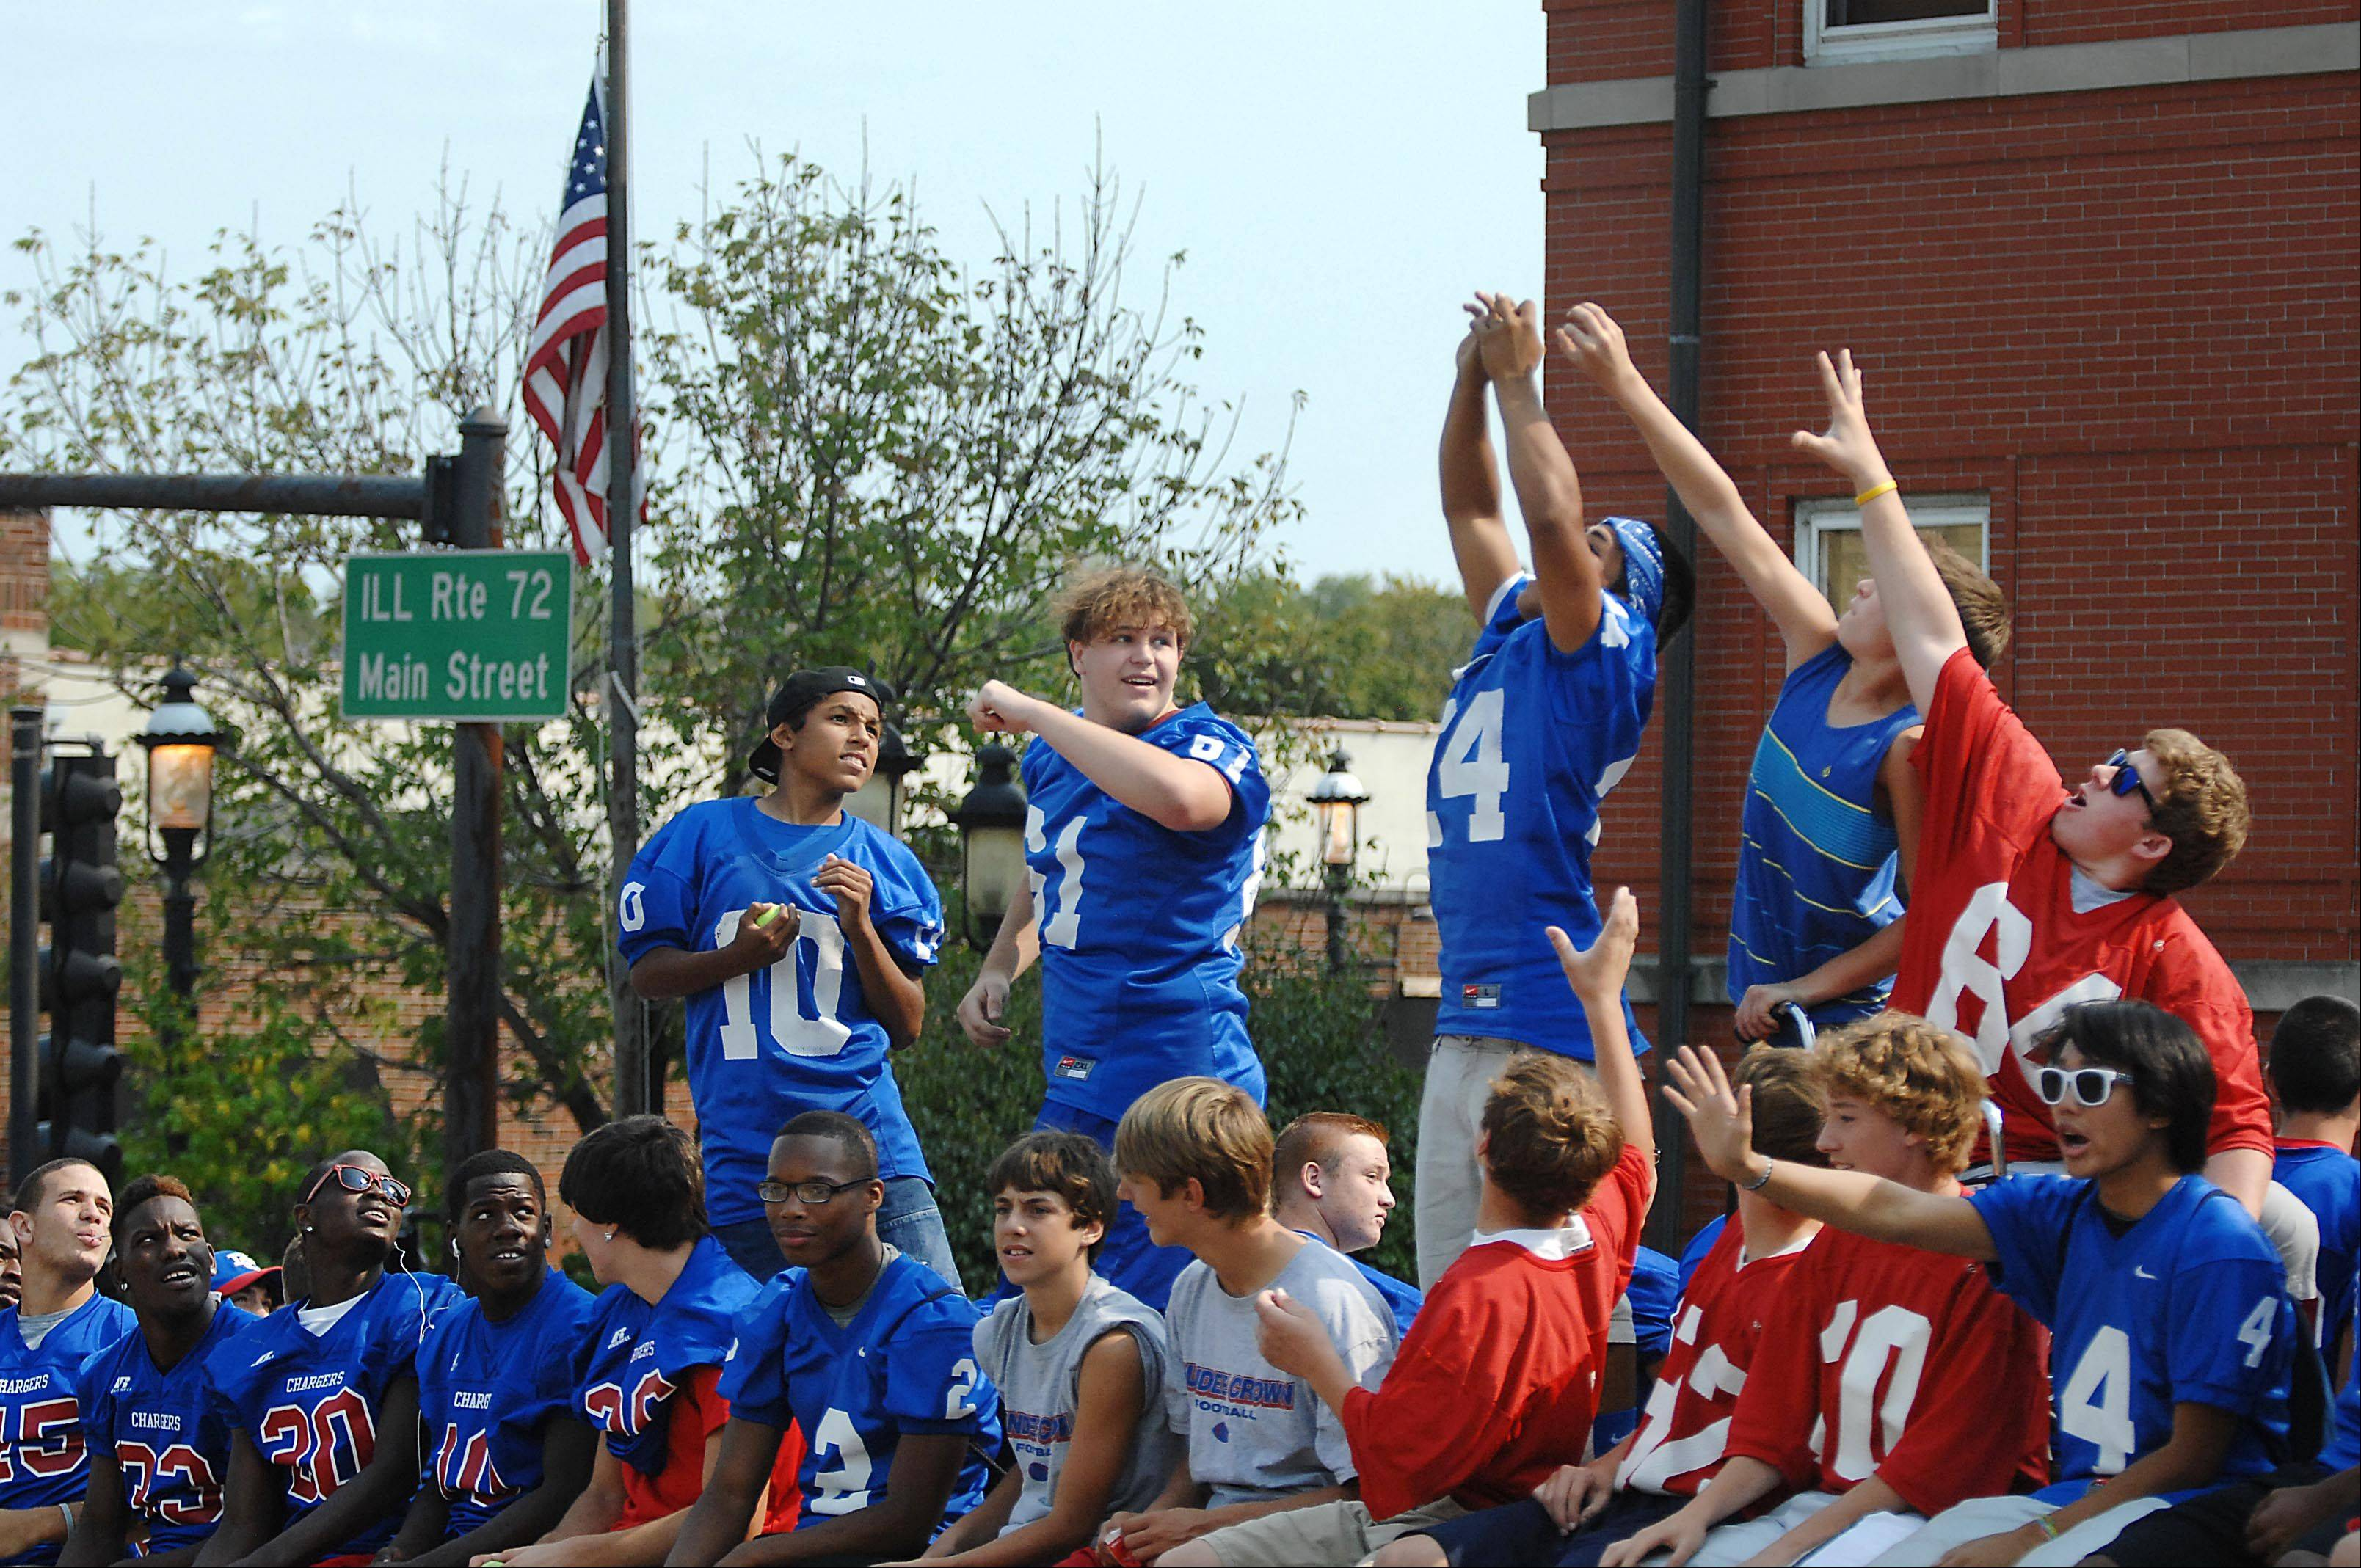 Varsity football players reach for a tennis ball thrown from the crowd at the Dundee-Crown High School Homecoming Parade on Main Street in West Dundee. The parade started in East Dundee and crossed the Fox River to Grafelman Park.